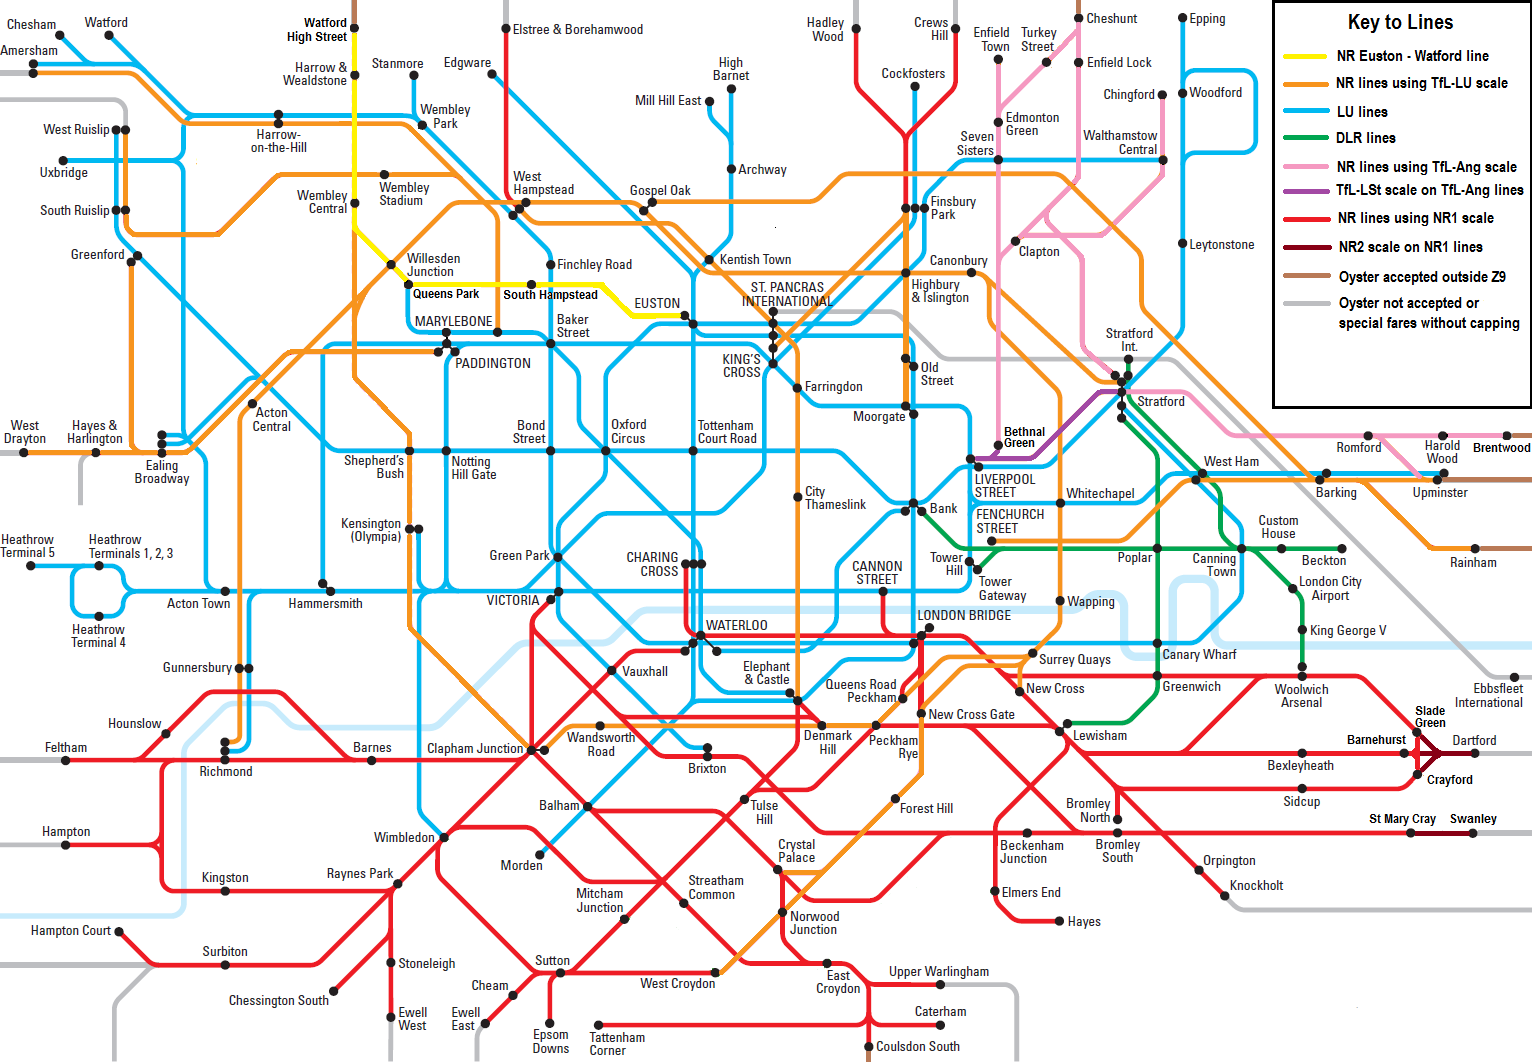 Oyster Card Zones 1 9 Map Oyster and National Rail » Single fares (2016) Oyster Card Zones 1 9 Map